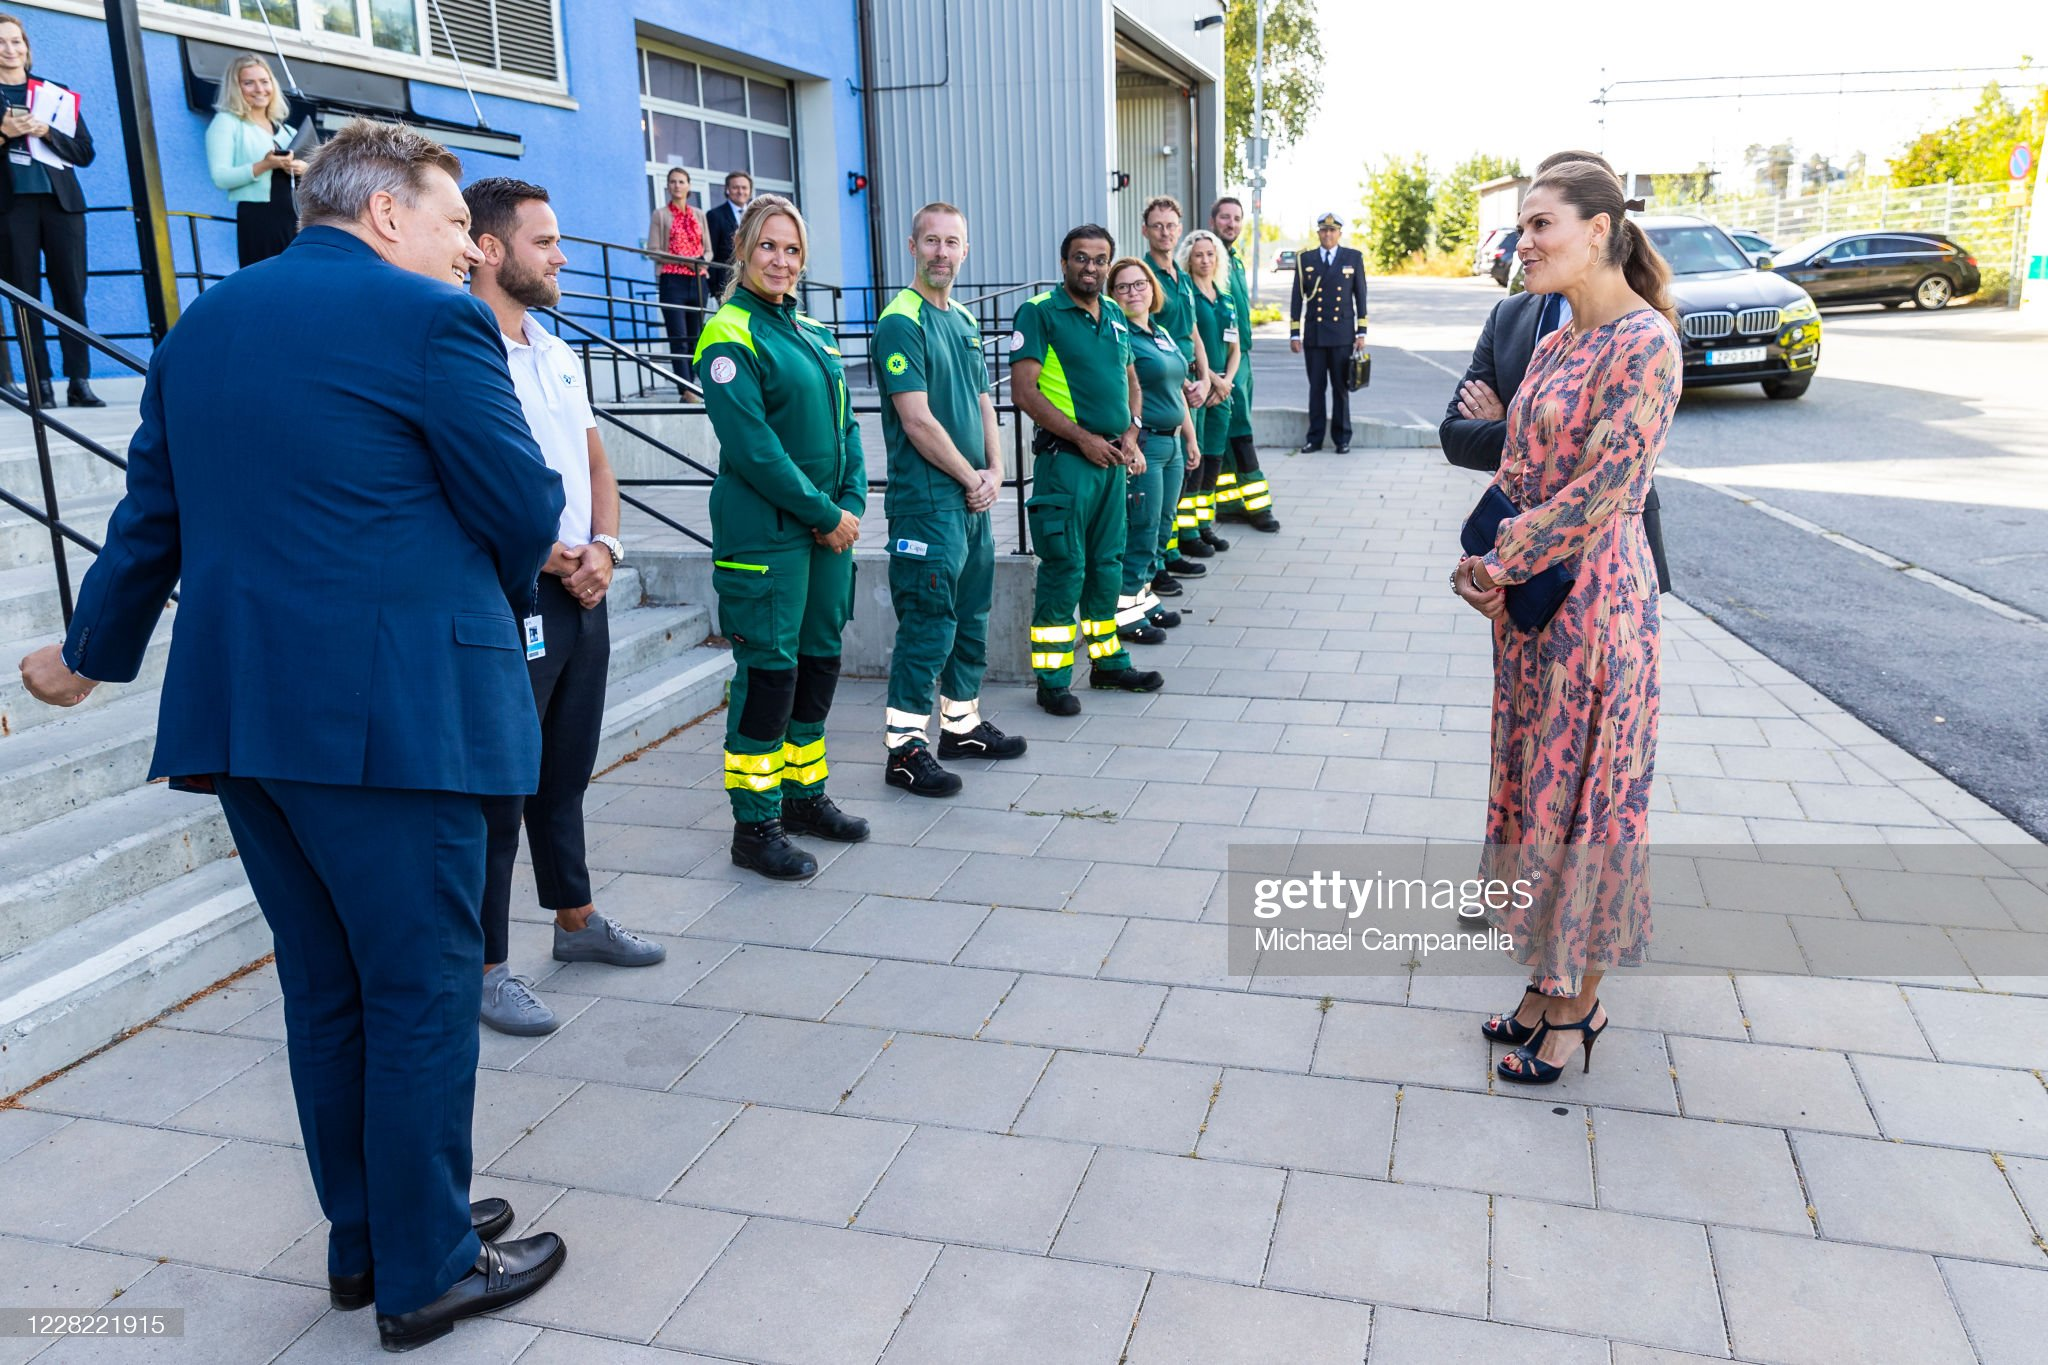 crown-princess-victoria-of-sweden-visits-an-ambulance-station-in-the-picture-id1228221915